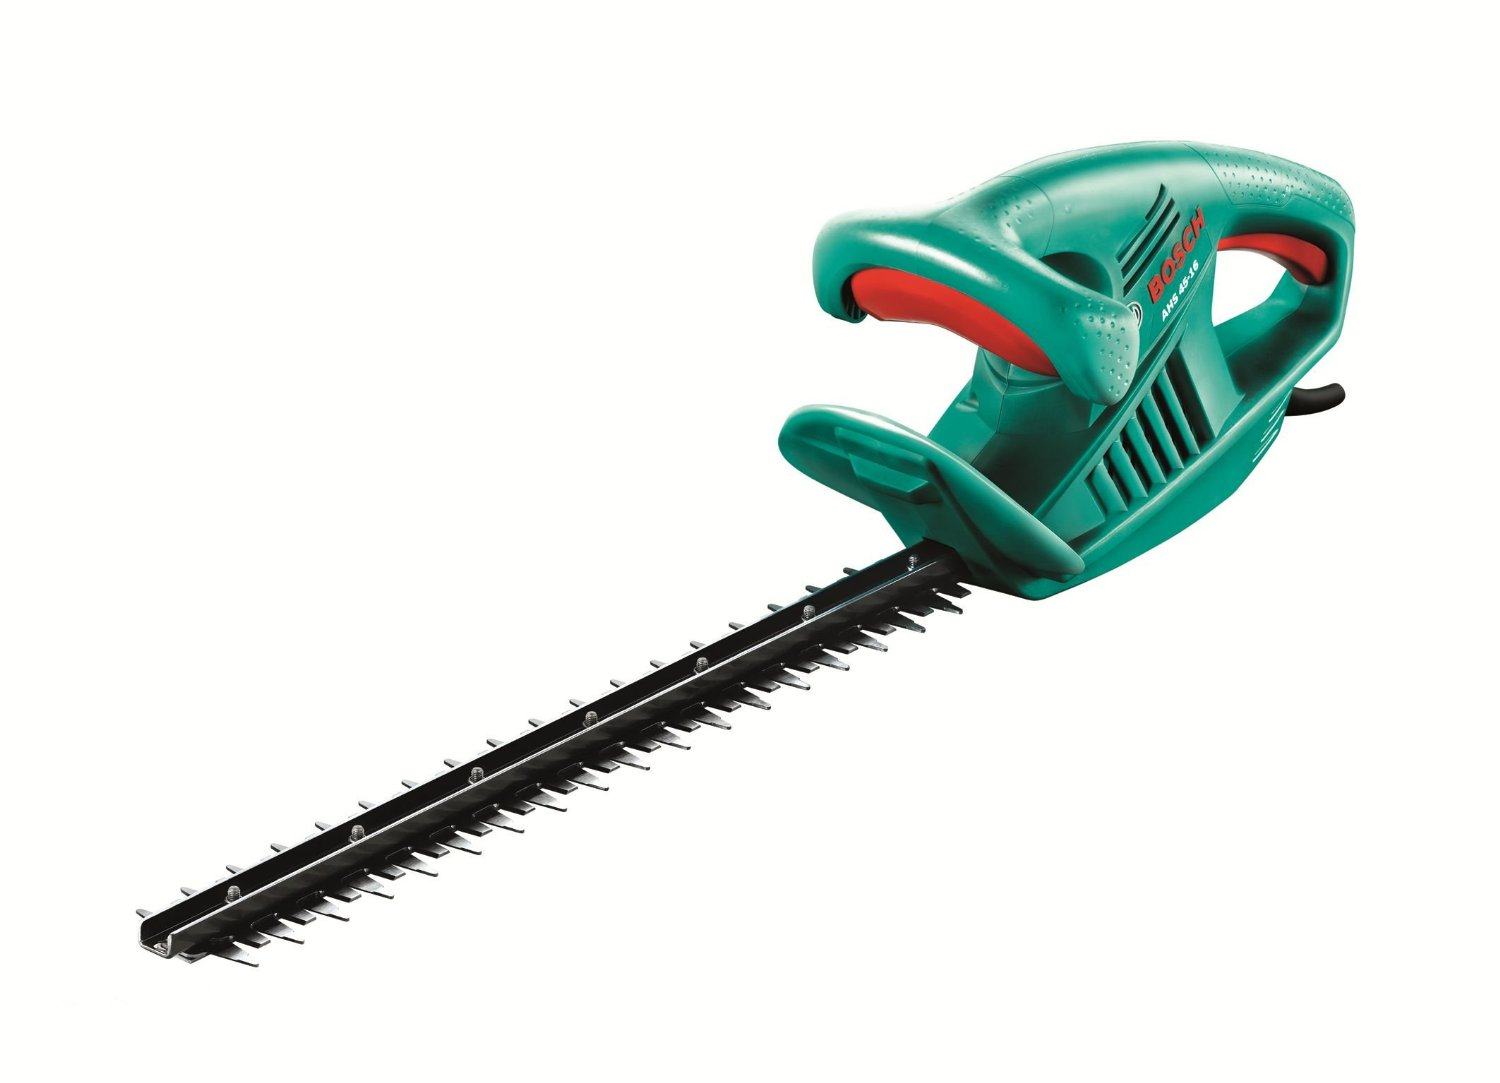 Bosch AHS 45-16 Electric Hedgecutter Review